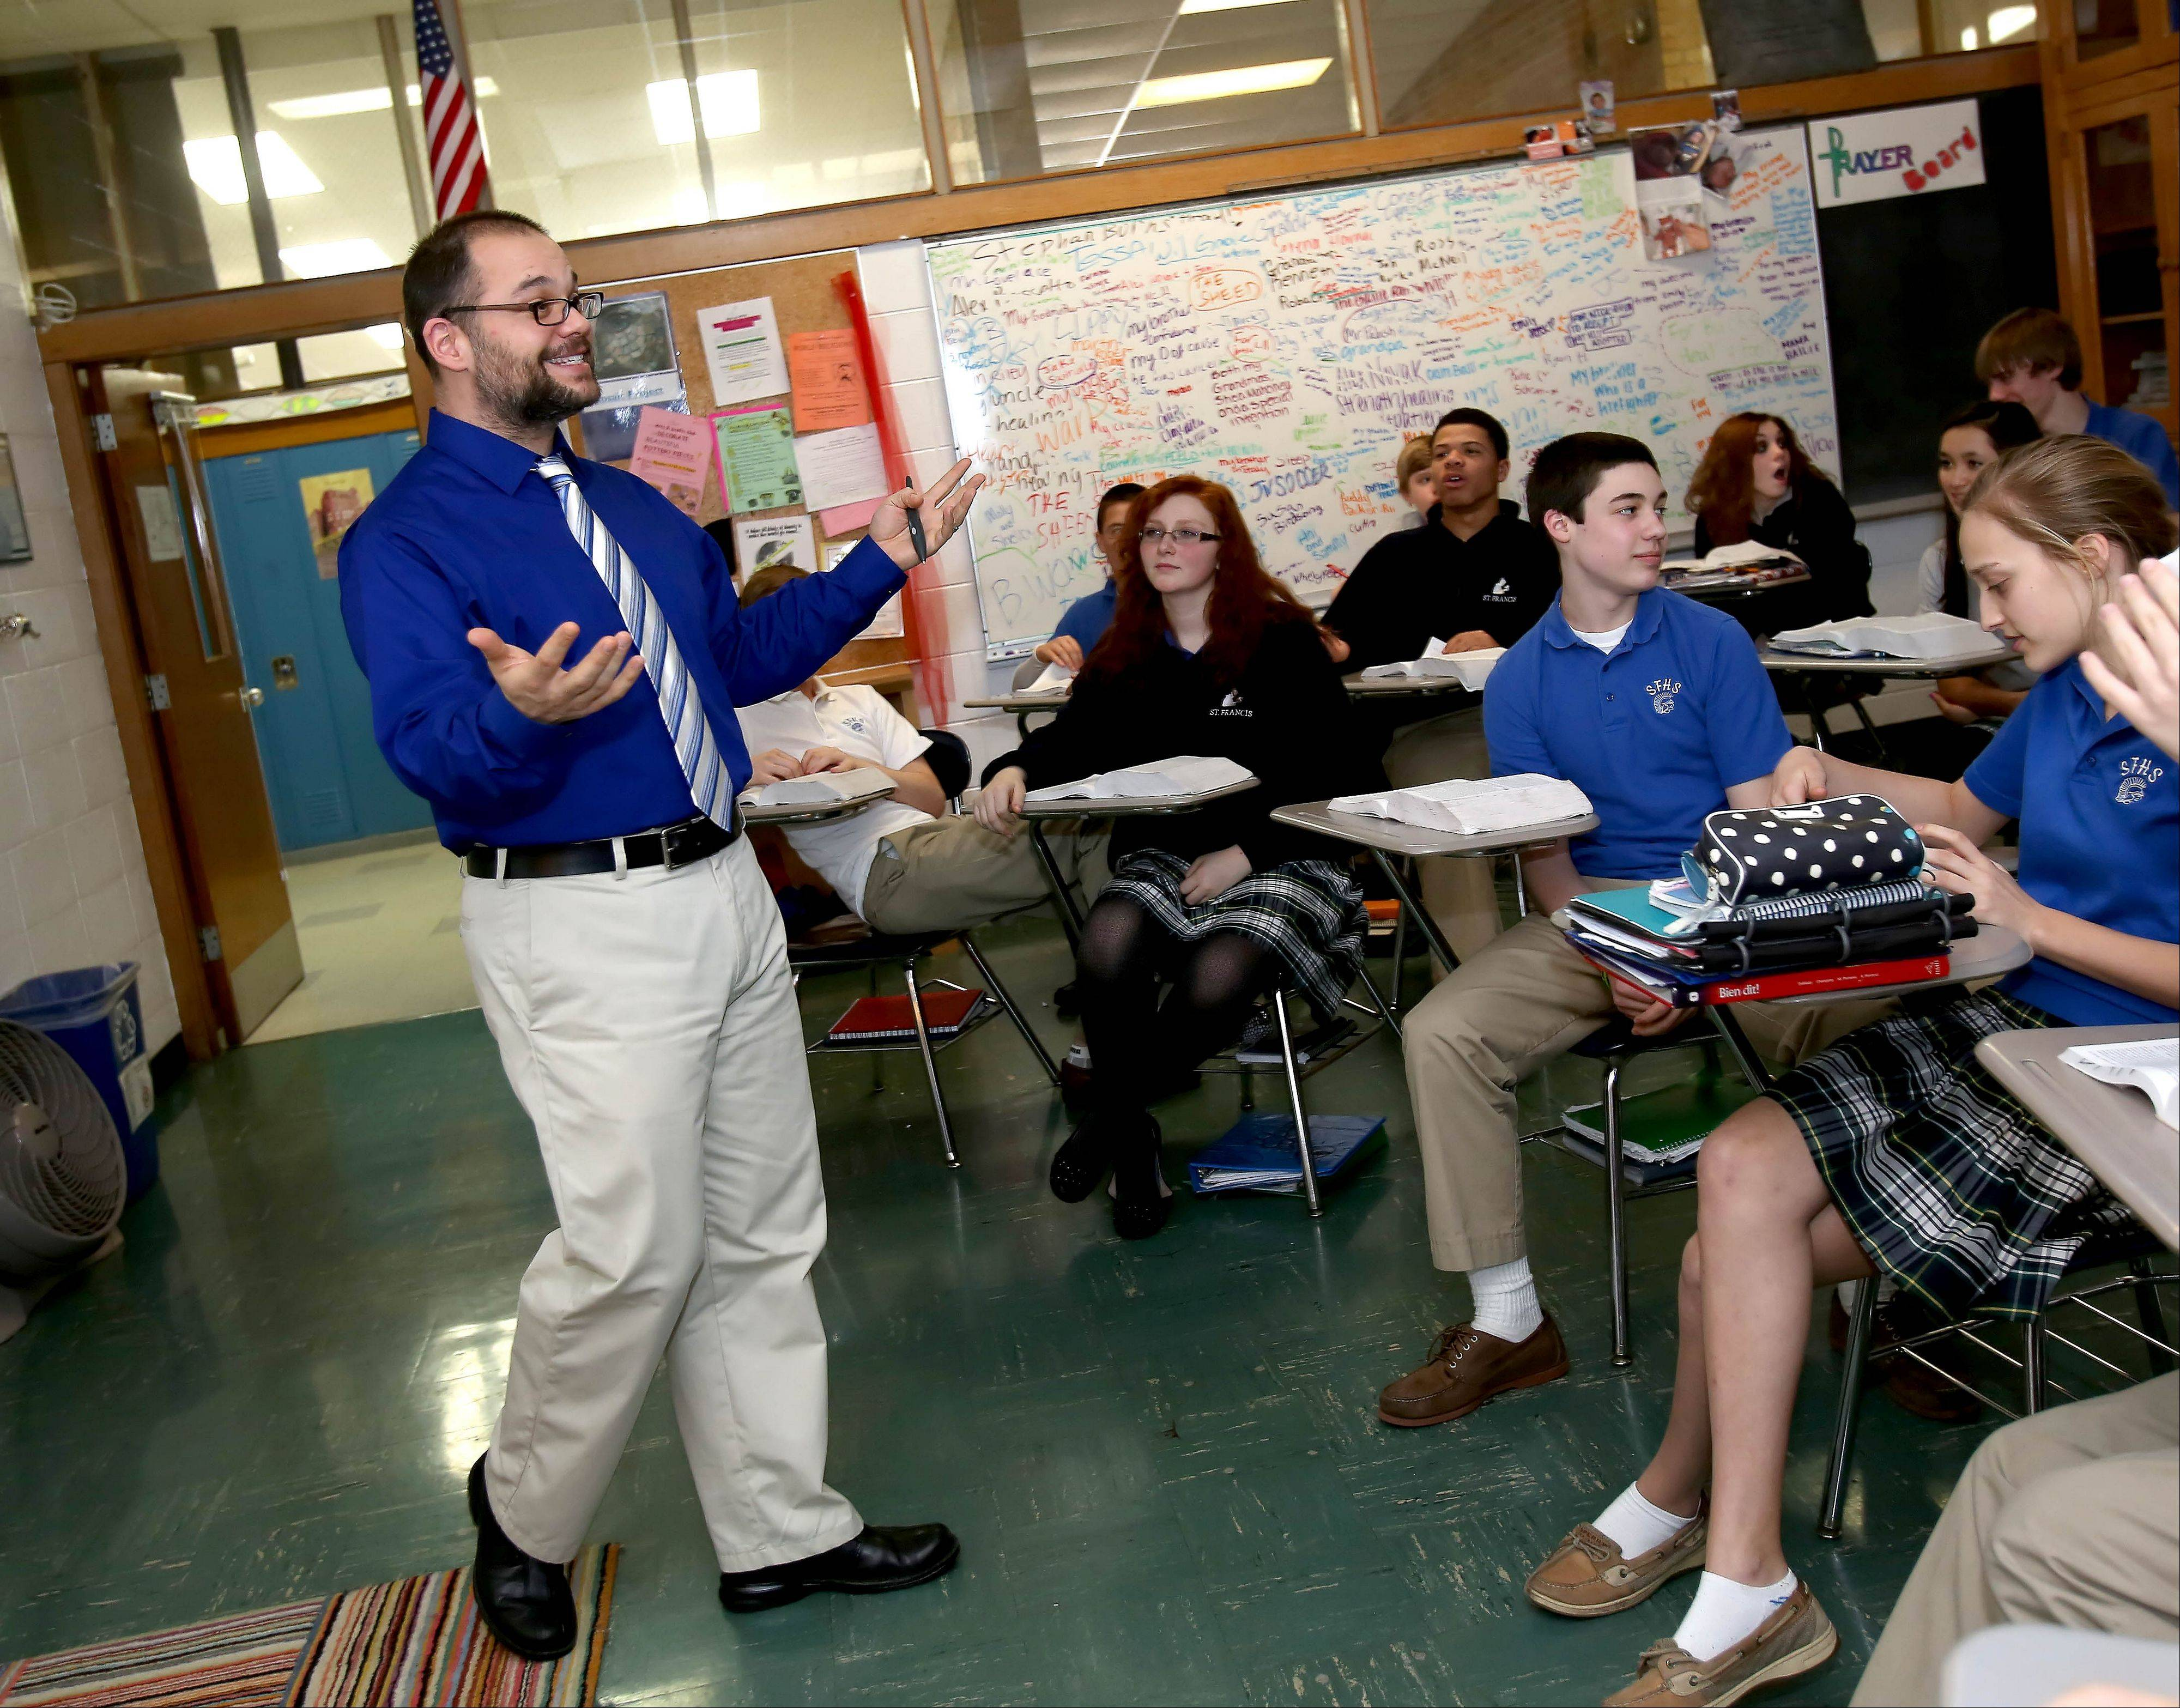 Michael Page teaches freshmen in religion class at St. Francis High School in Wheaton. Students at the school are thrilled the new pope has named himself after St. Francis of Assisi.